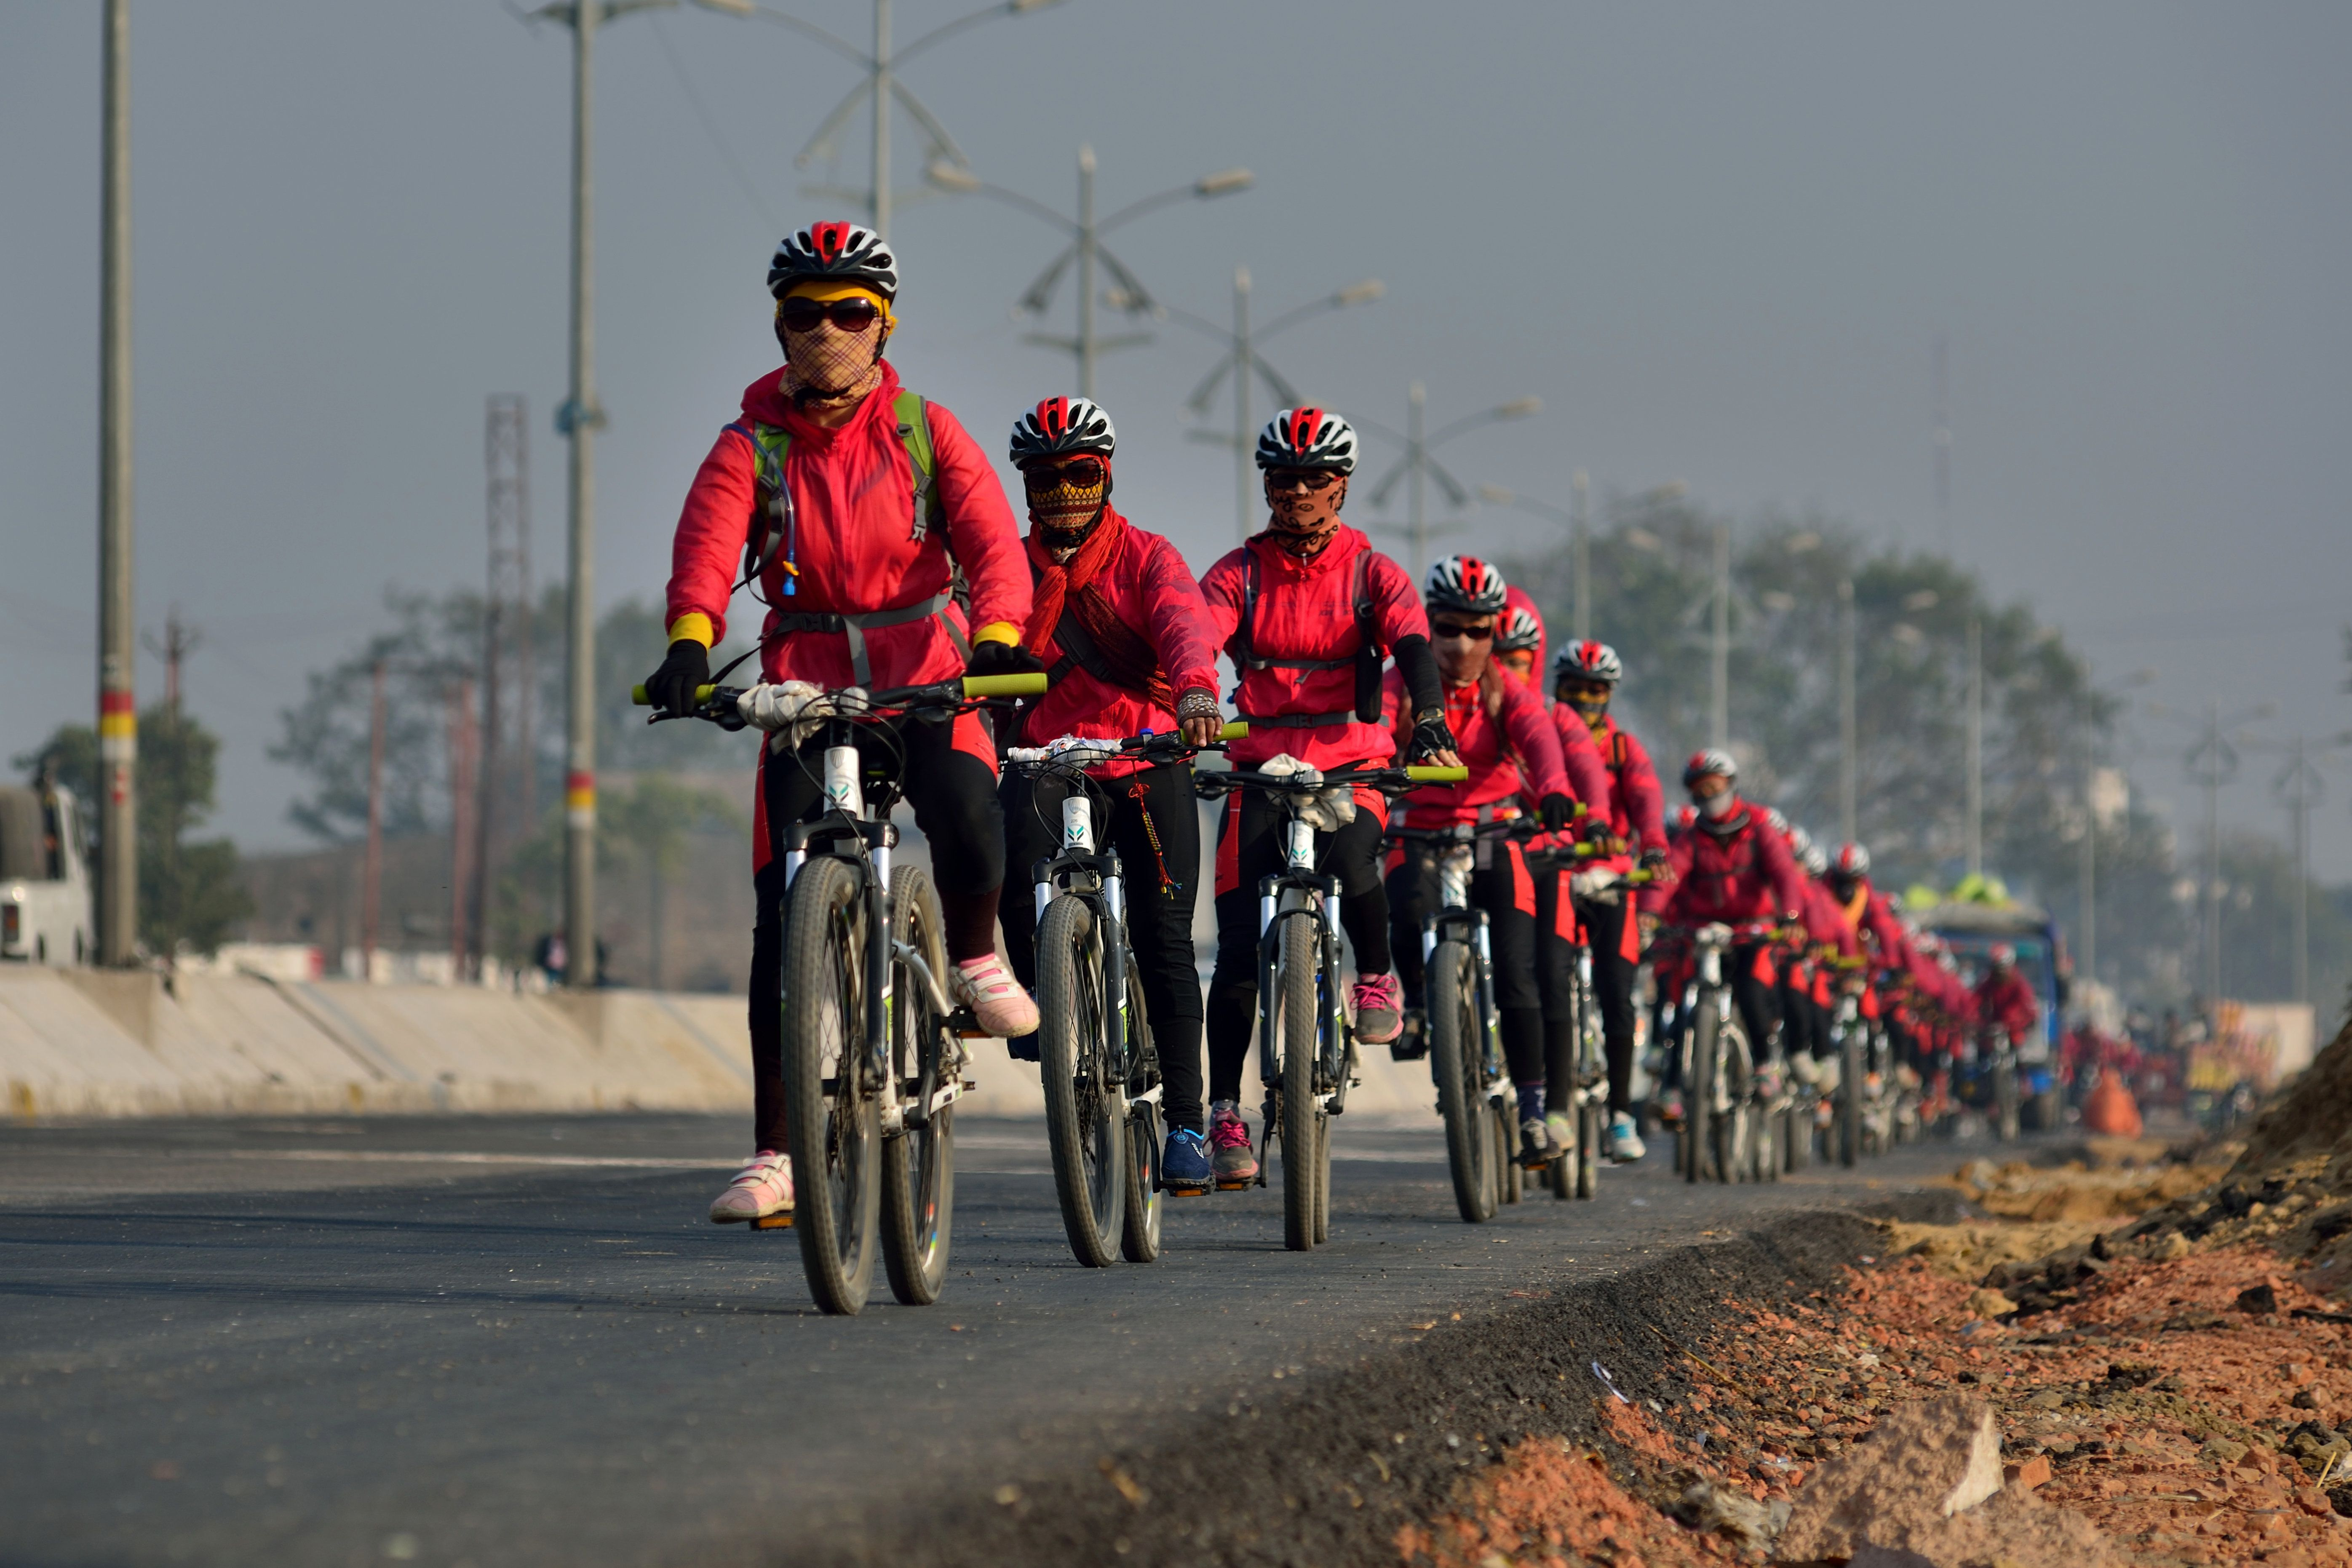 NEW DELHI, INDIA - JANUARY 4: Kung Fu nuns on cycle tour from Kathmandu to New Delhi with message of women empowerment and raise awareness on environment protection on January 4, 2016 in New Delhi, India. 250 of Buddhist nuns of the Drukpa order, known also as the Kung Fu Nuns are on a 2,200km cycle ride from Kathmandu to Delhi to spread the message of womens empowerment and environmental consciousness, emphasizing the importance of ecological balance amid economic development. (Photo by Pradeep Gaur /Mint via Getty Images)